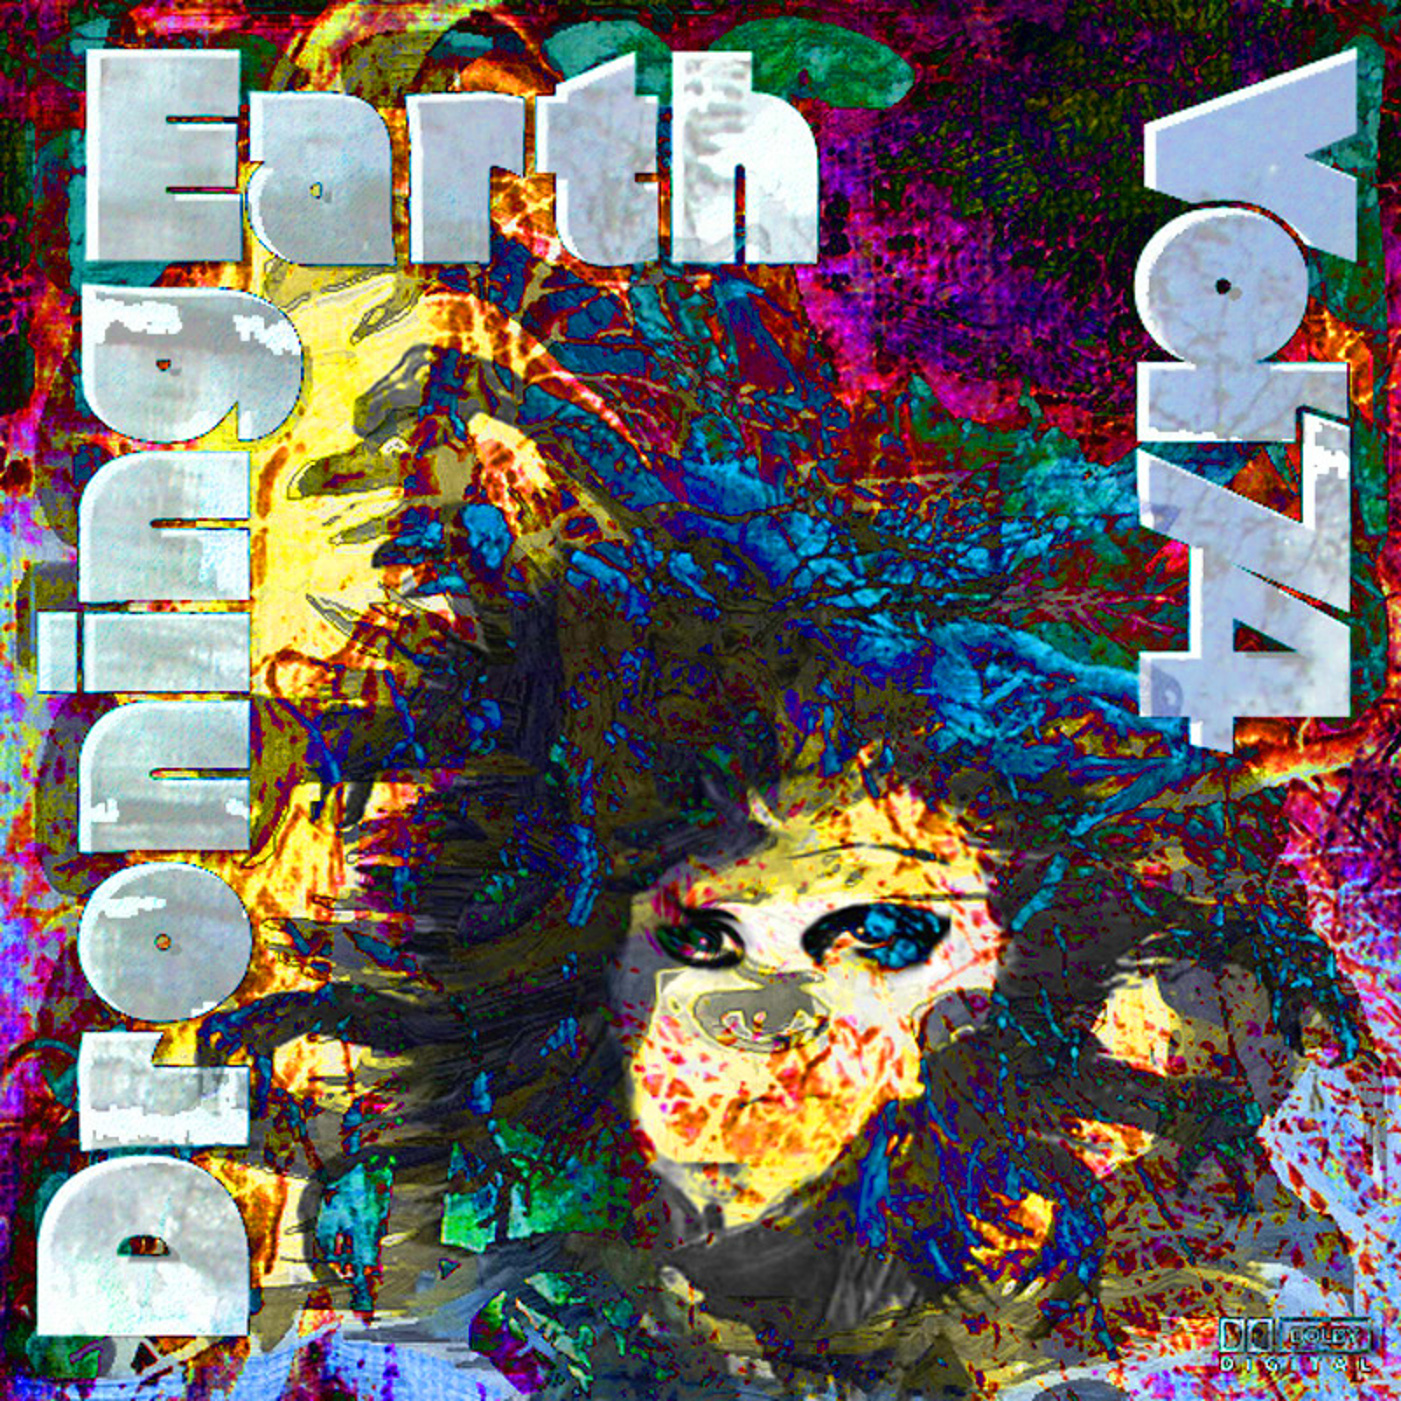 00_-_DRONING_EARTH_VOL74_-_COVER